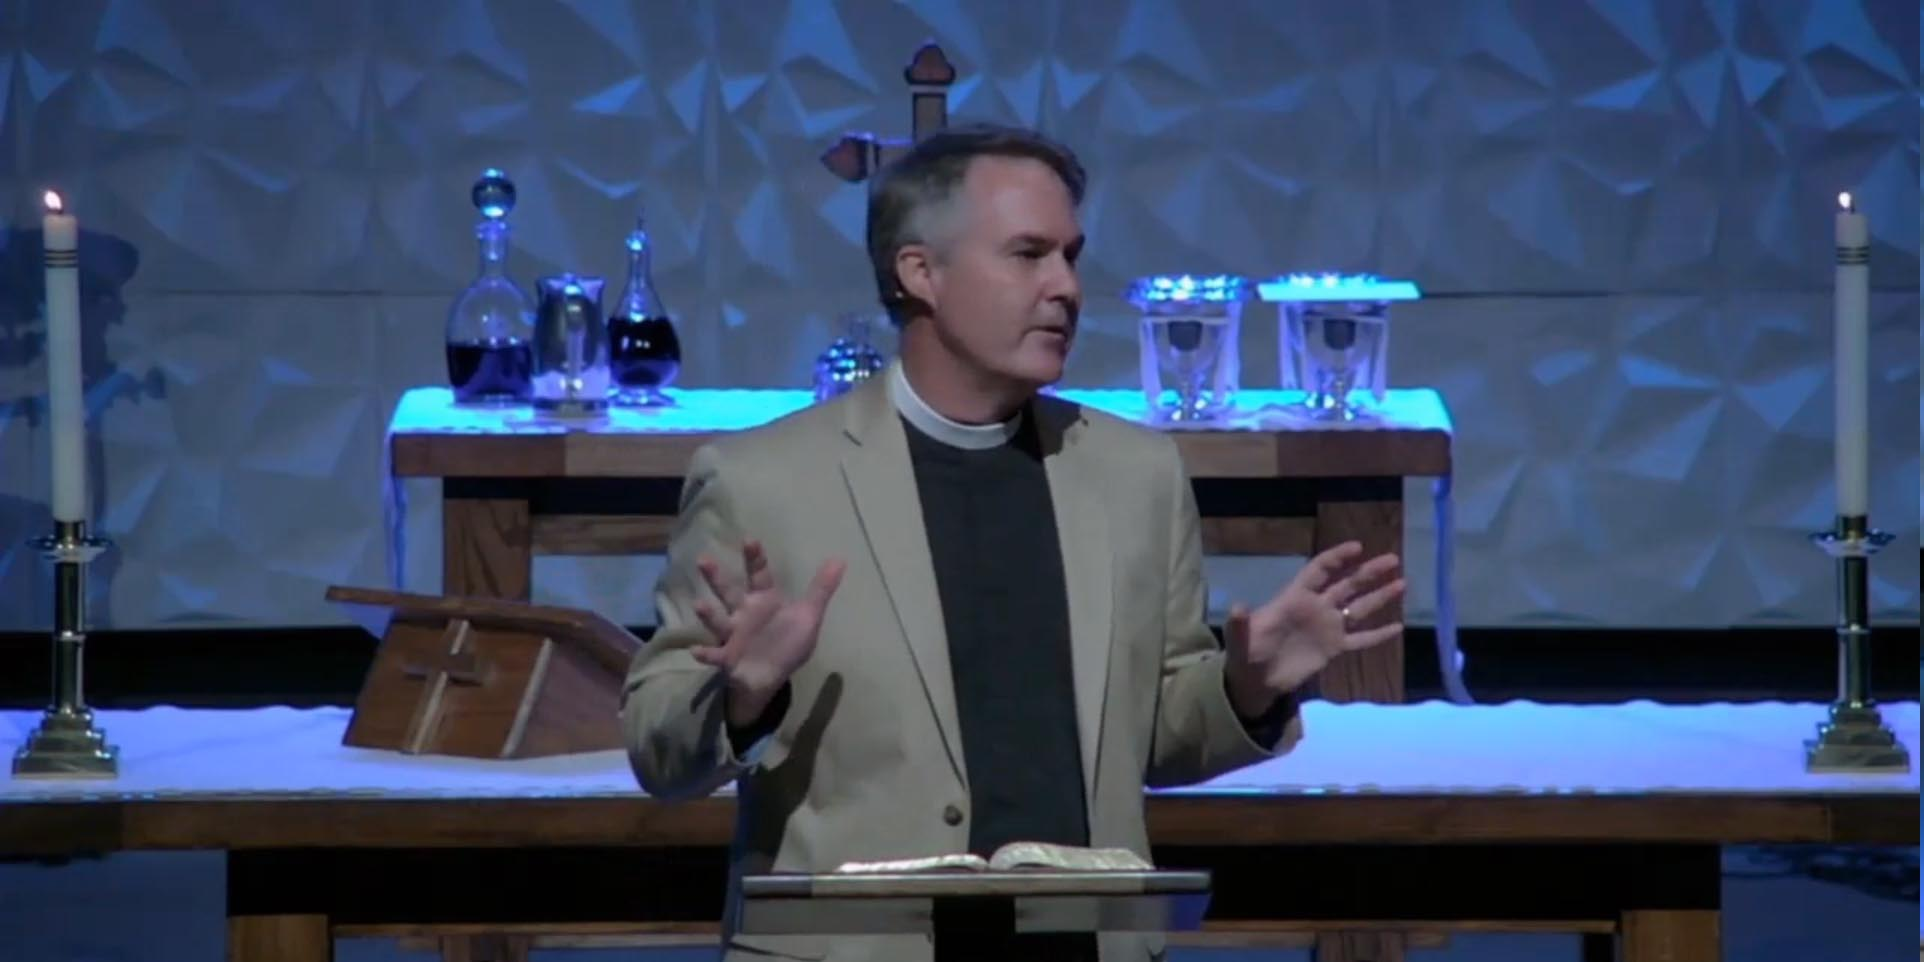 Politics, Marriage, and the Resurrection of the Dead - Sermon by the Rev. Charlie Holt